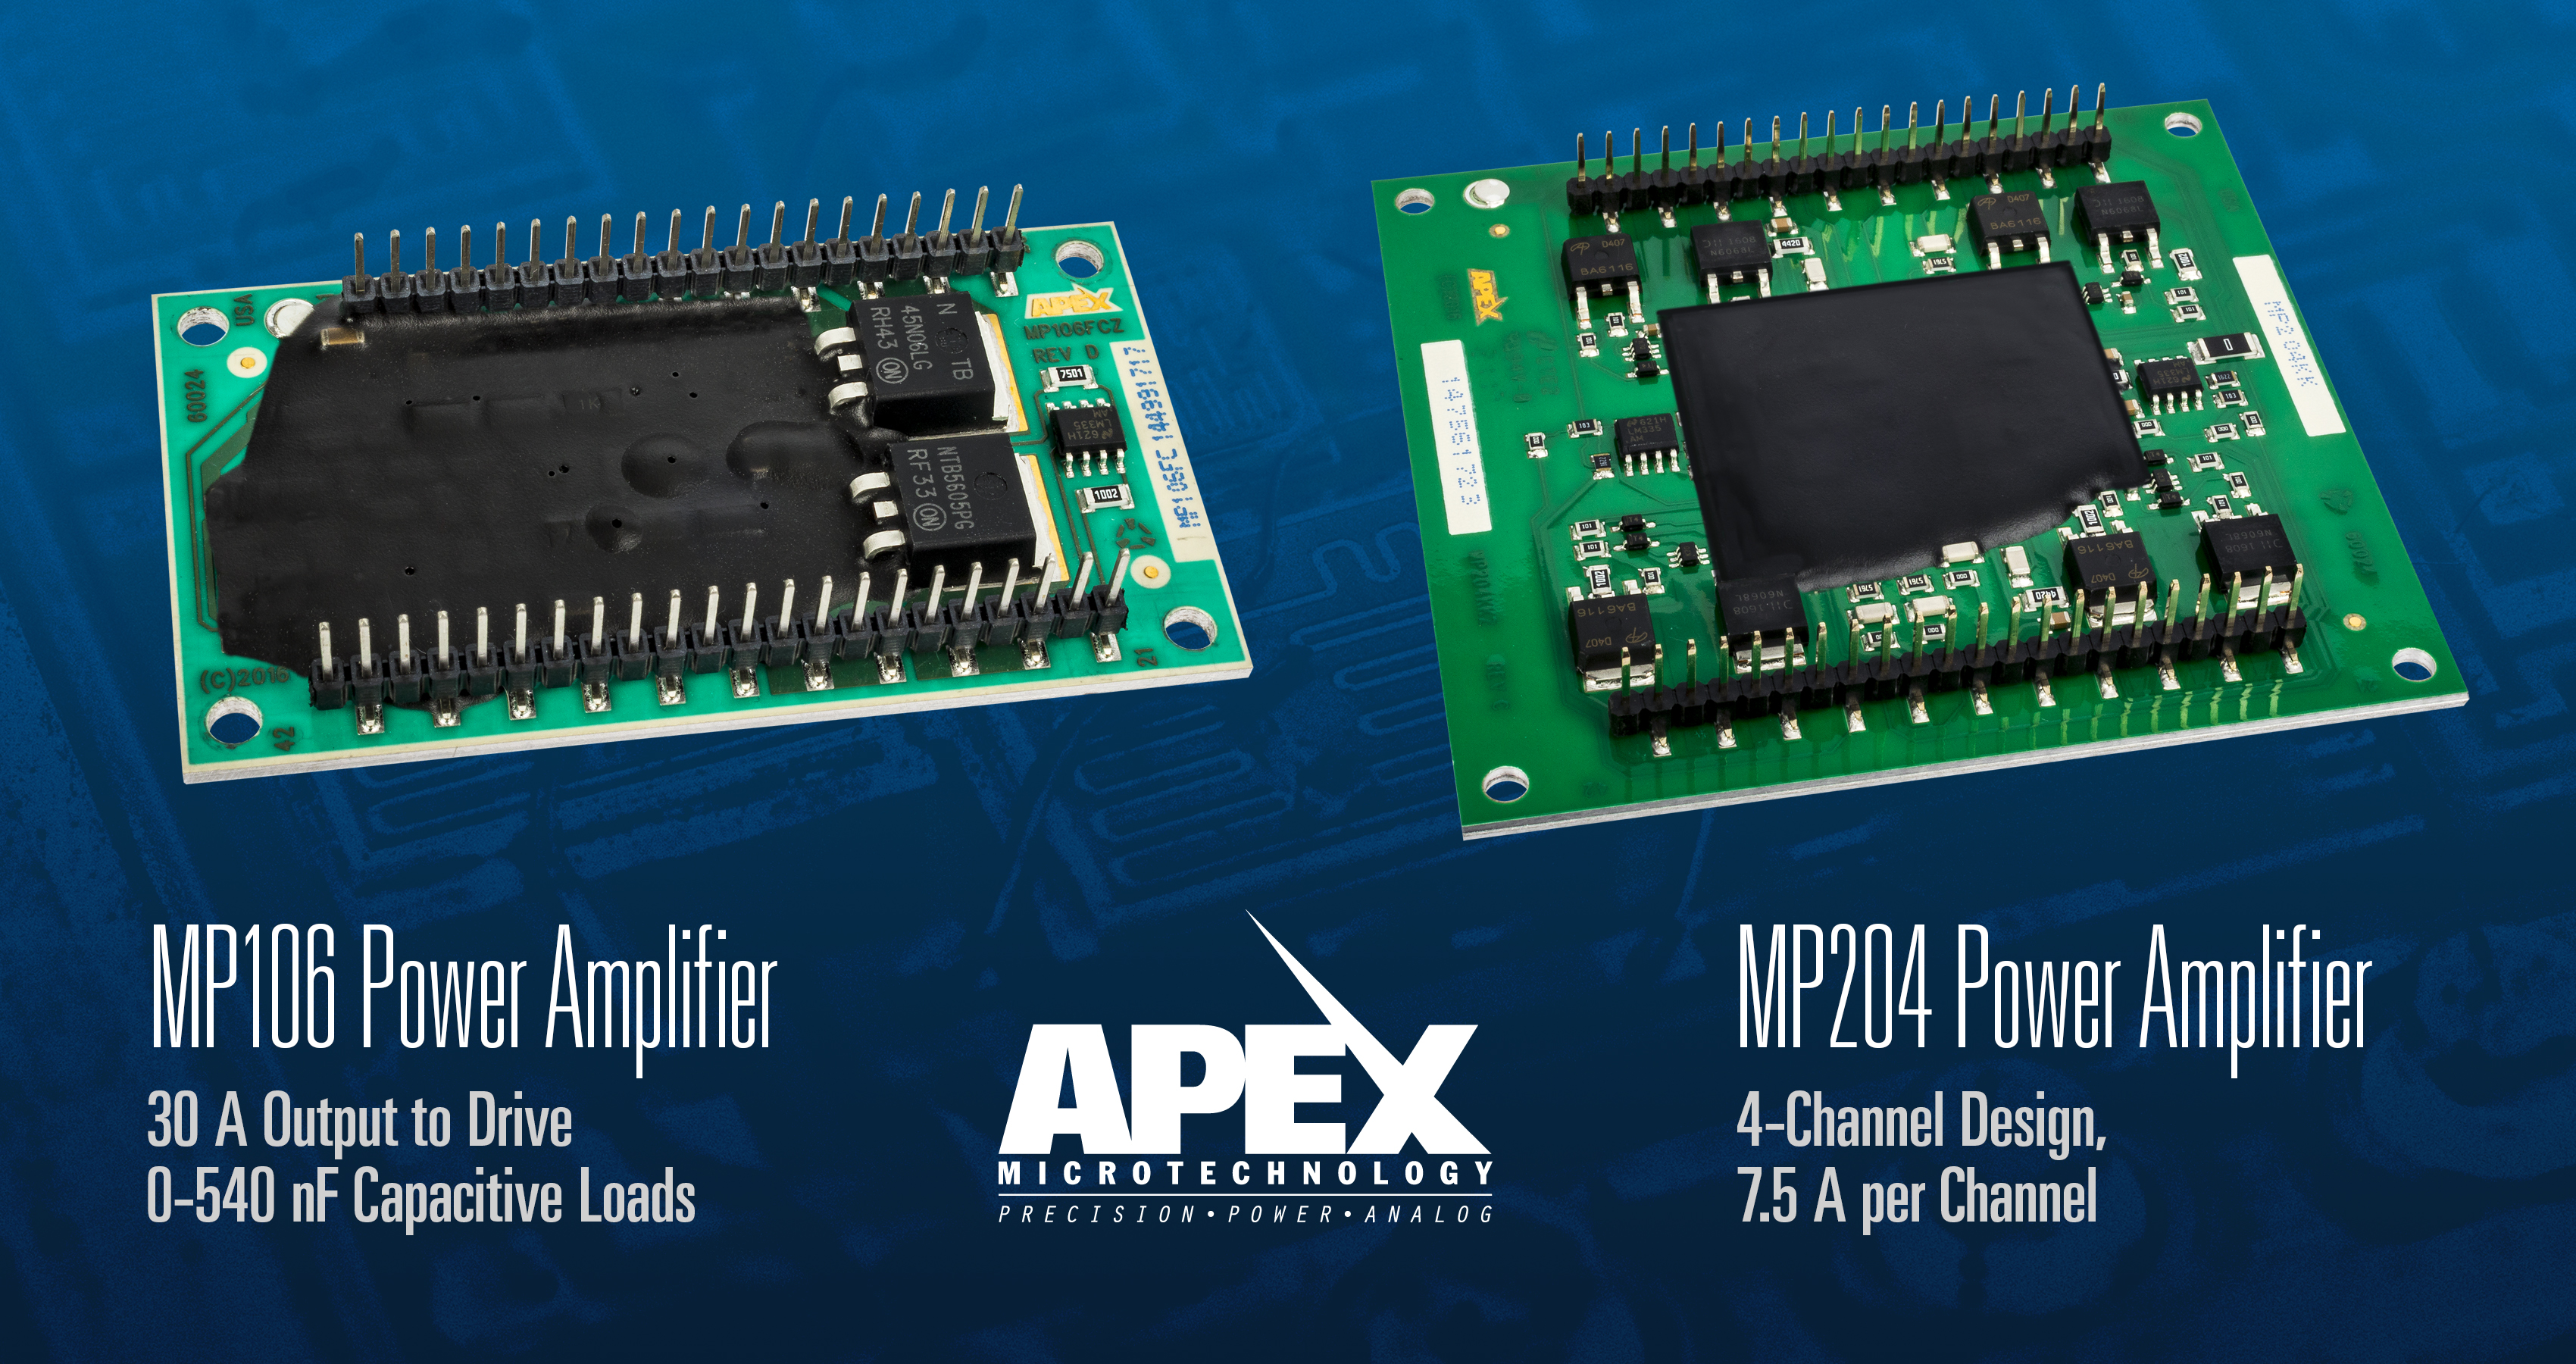 Amplifiers Specialize in Driving Piezoelectric Capacitive Loads in Inkjet Printer Heads